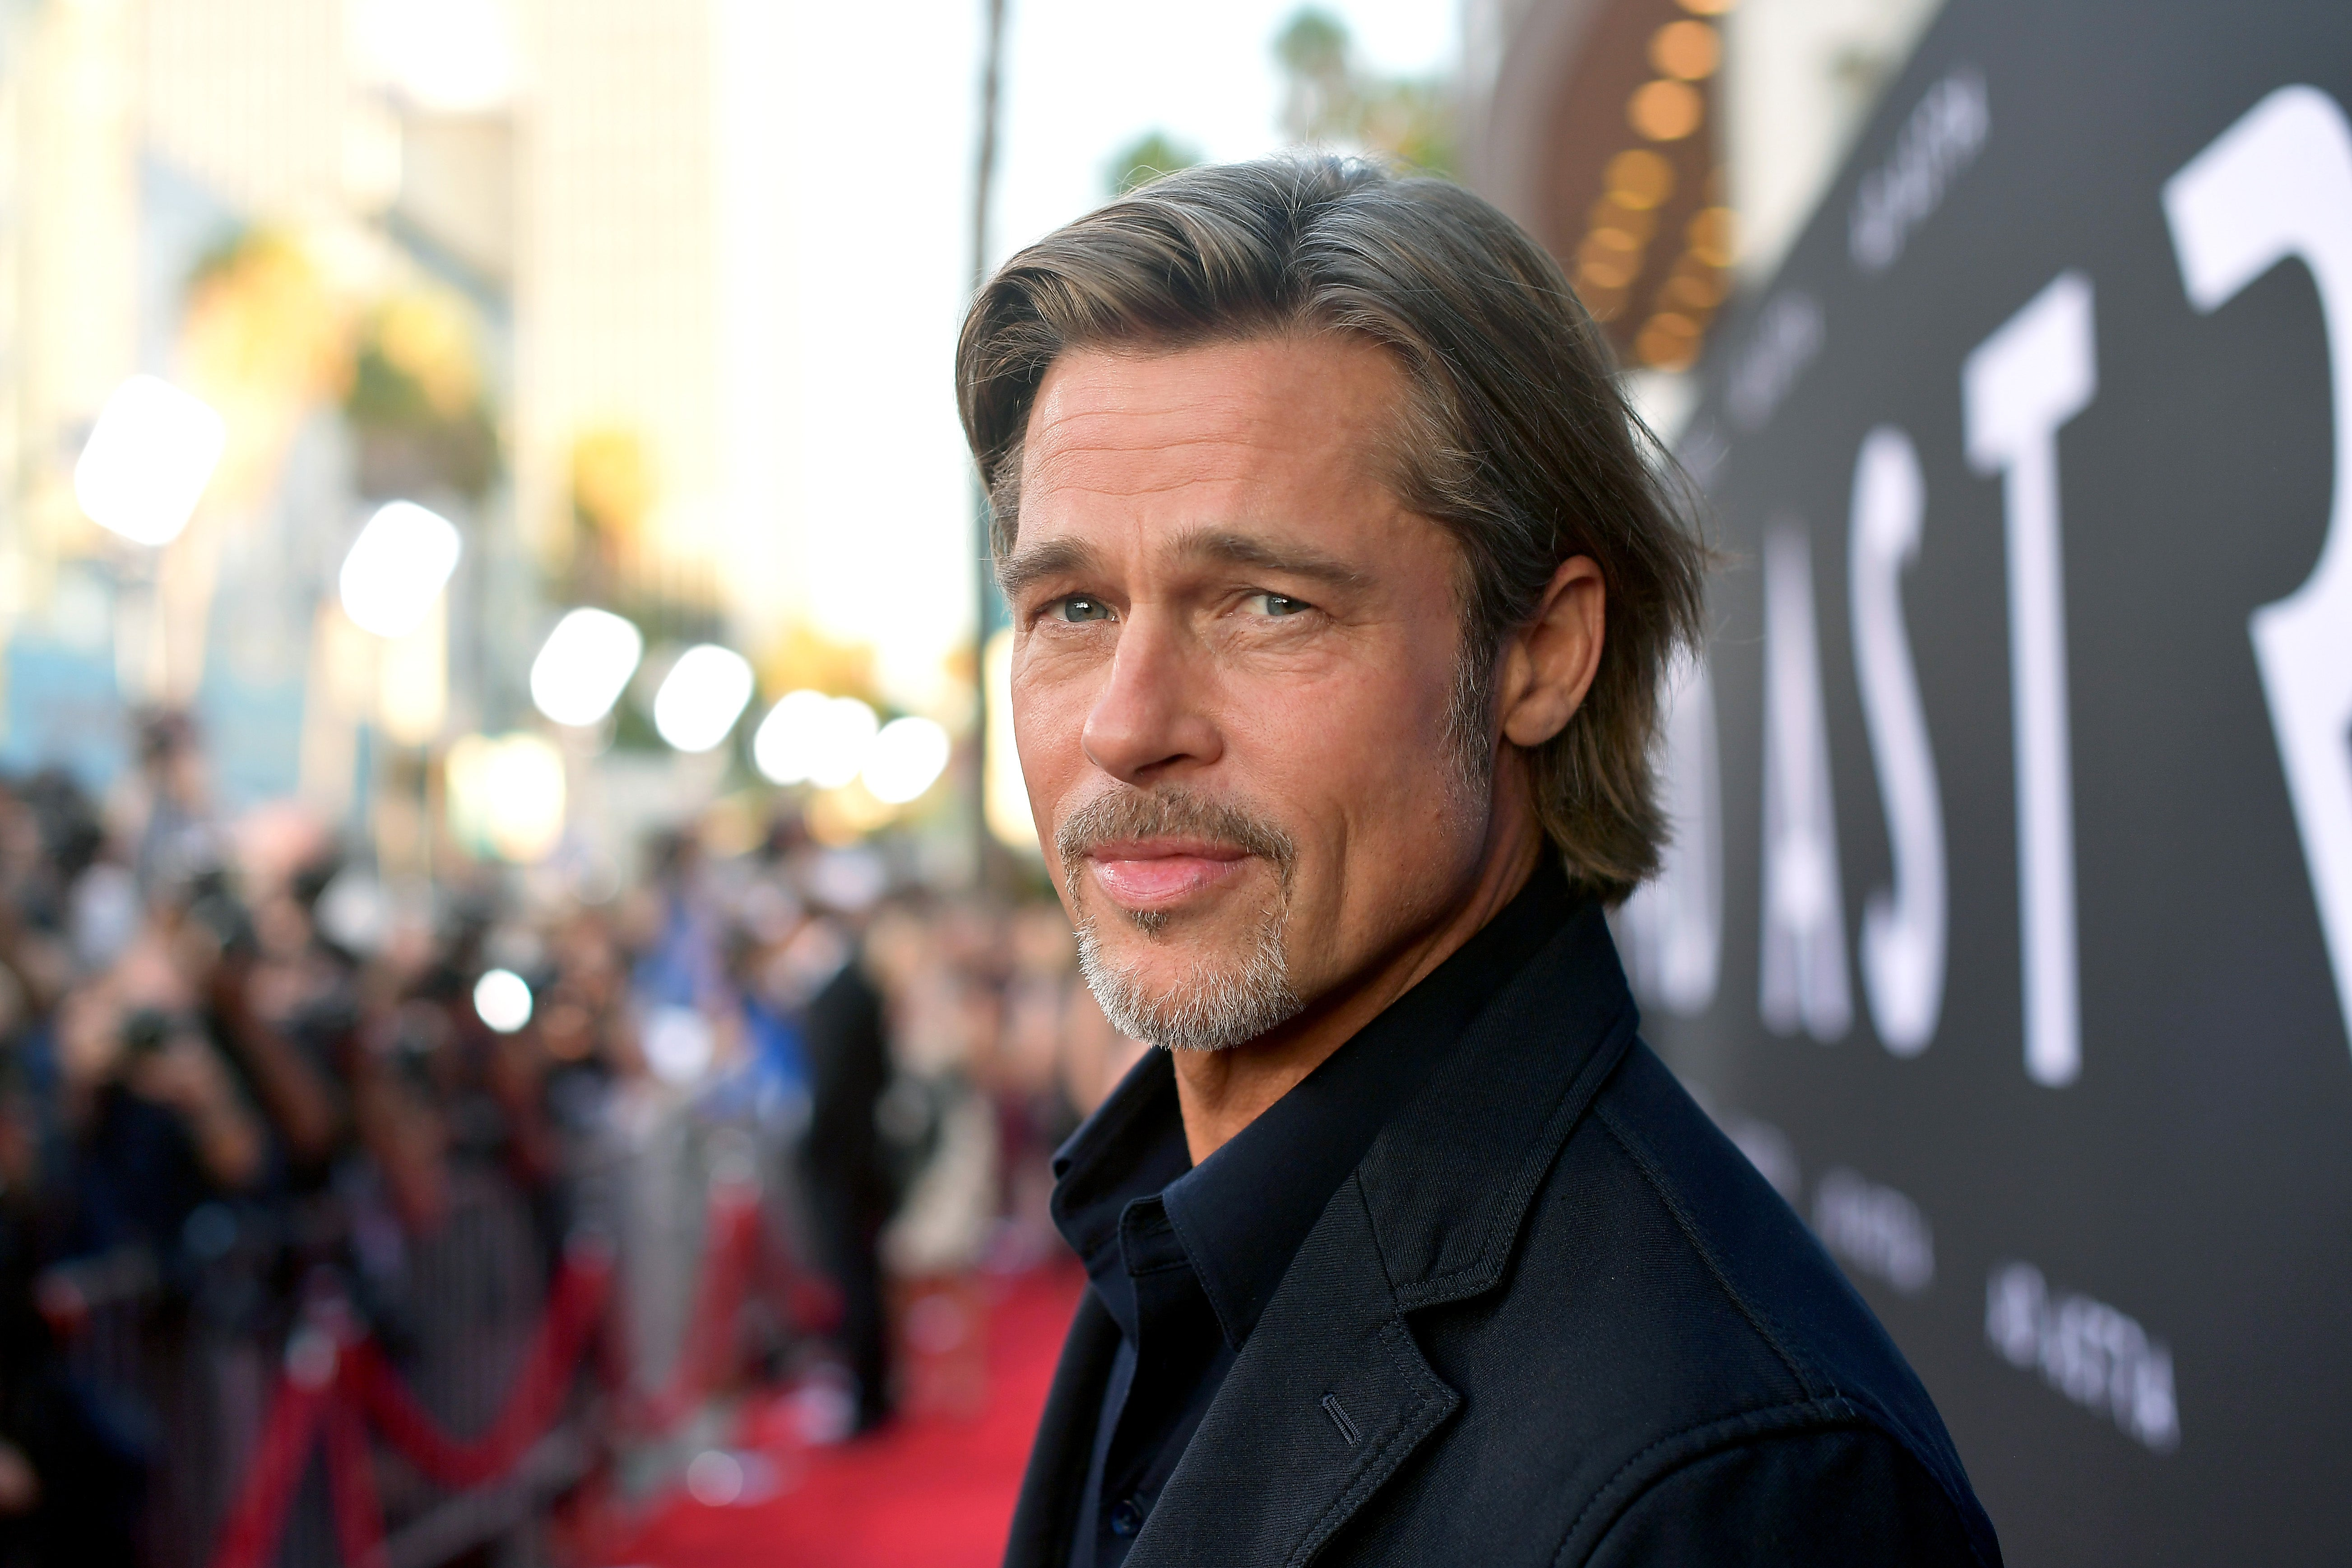 Brad Pitt Responds to the Internet's Thirst Over Him After Sexy GQ Spread (Exclusive)